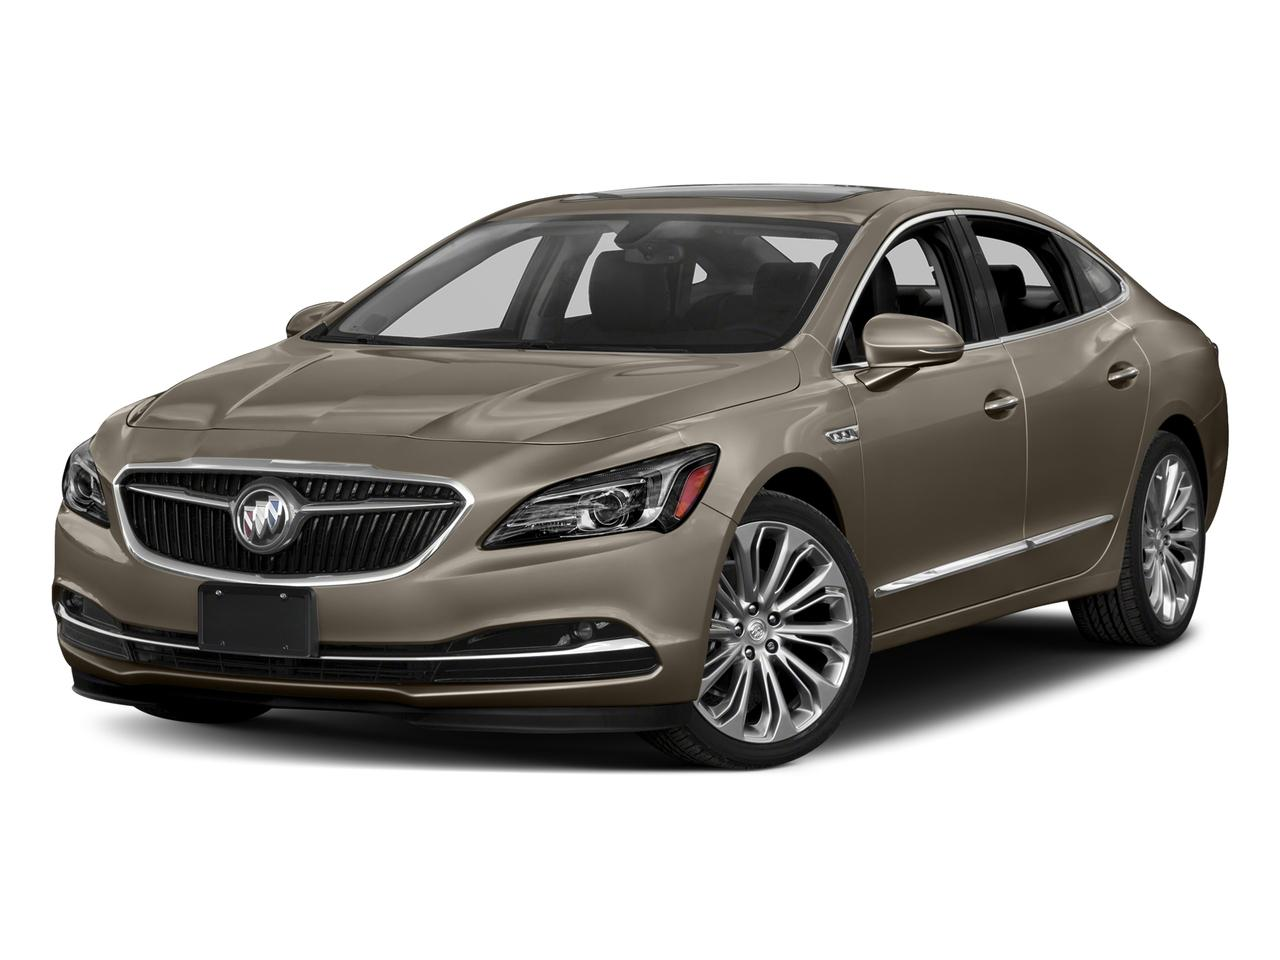 2017 Buick LaCrosse Vehicle Photo in Gulfport, MS 39503